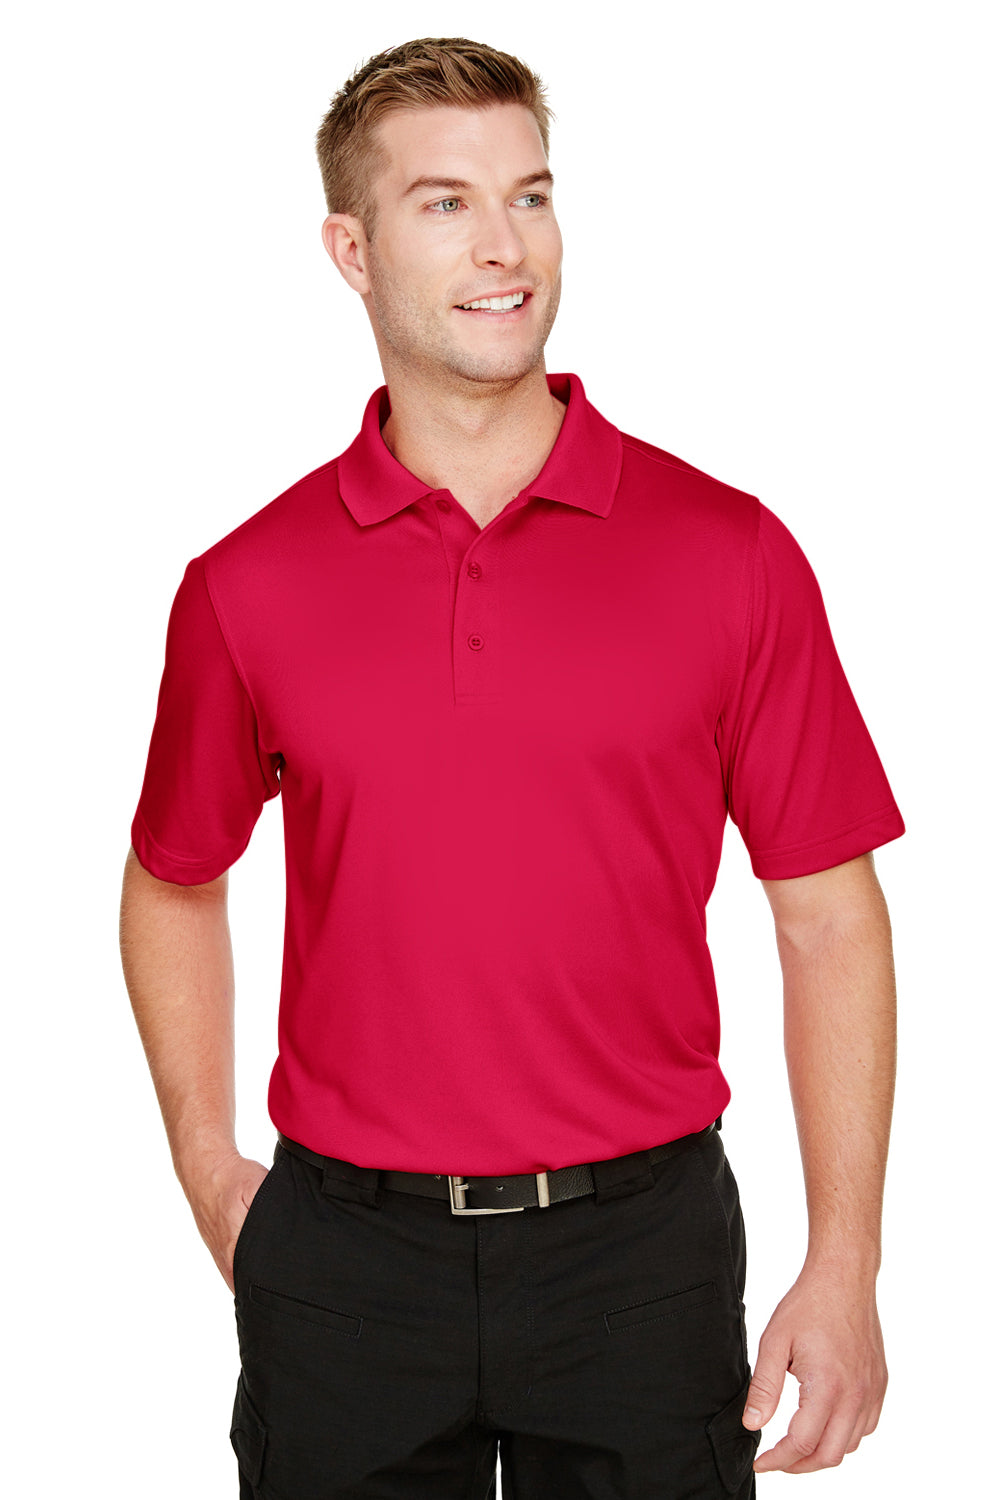 Harriton M348 Mens Advantage Performance Moisture Wicking Short Sleeve Polo Shirt Red Front